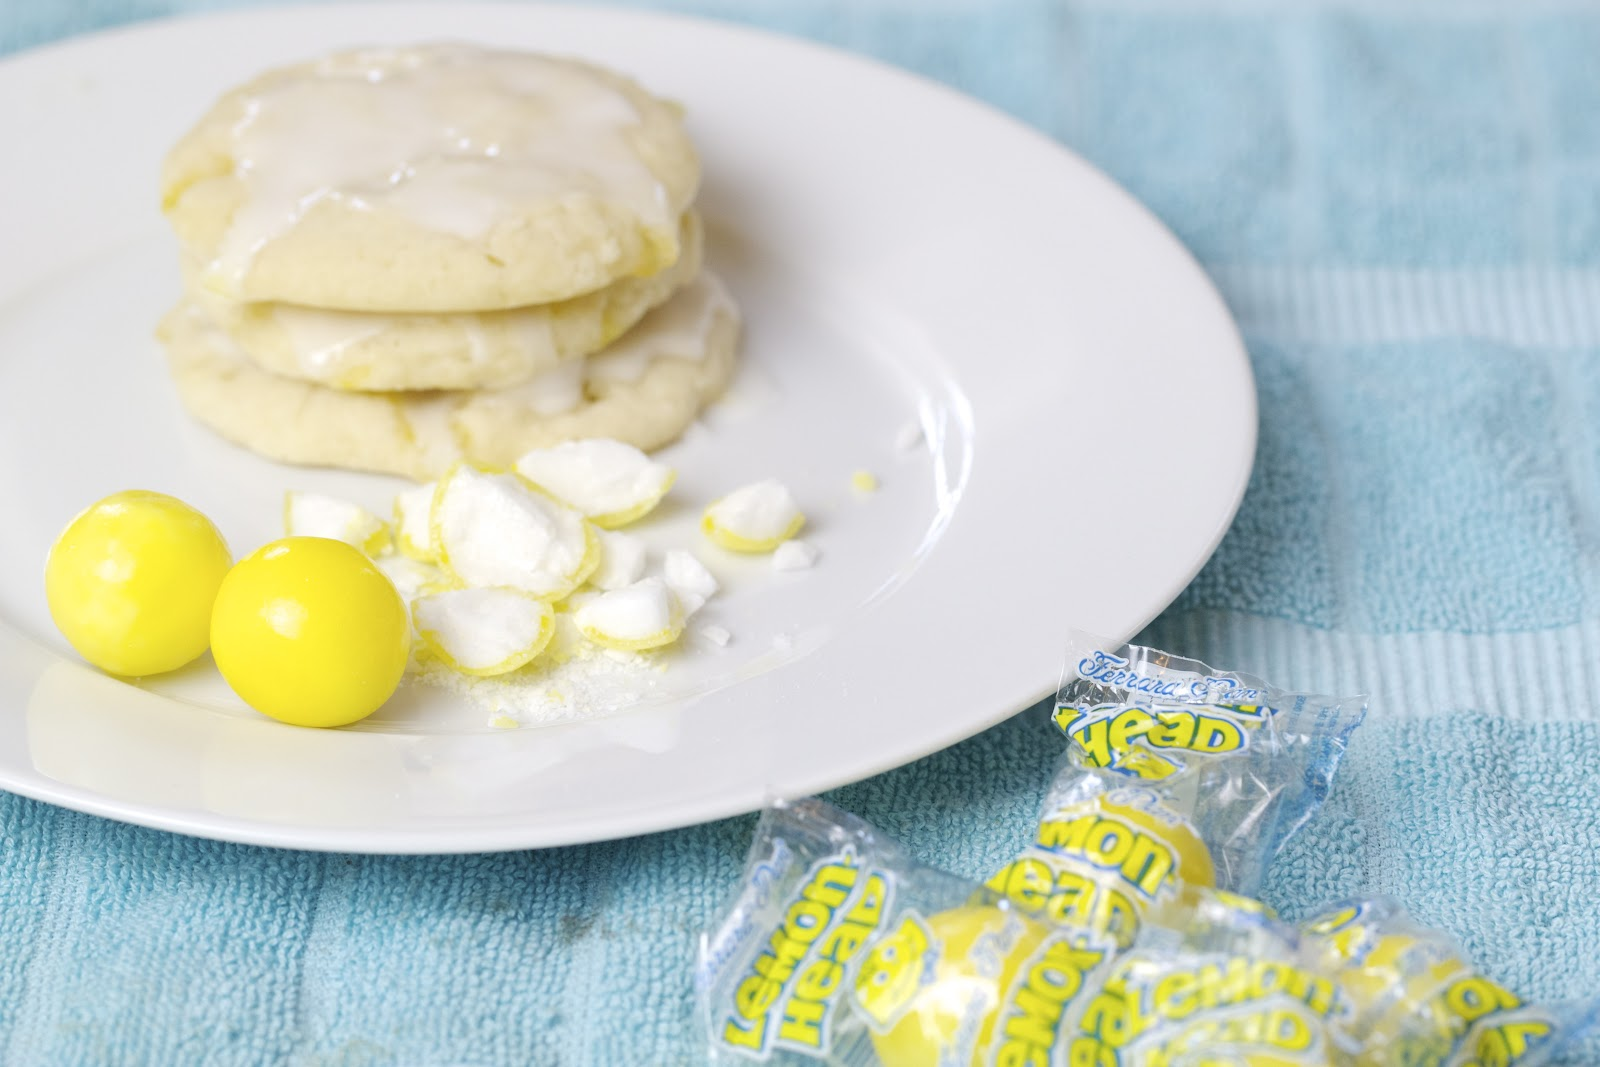 Thyme In Our Kitchen: Addicting Lemon Cookies with Lemon